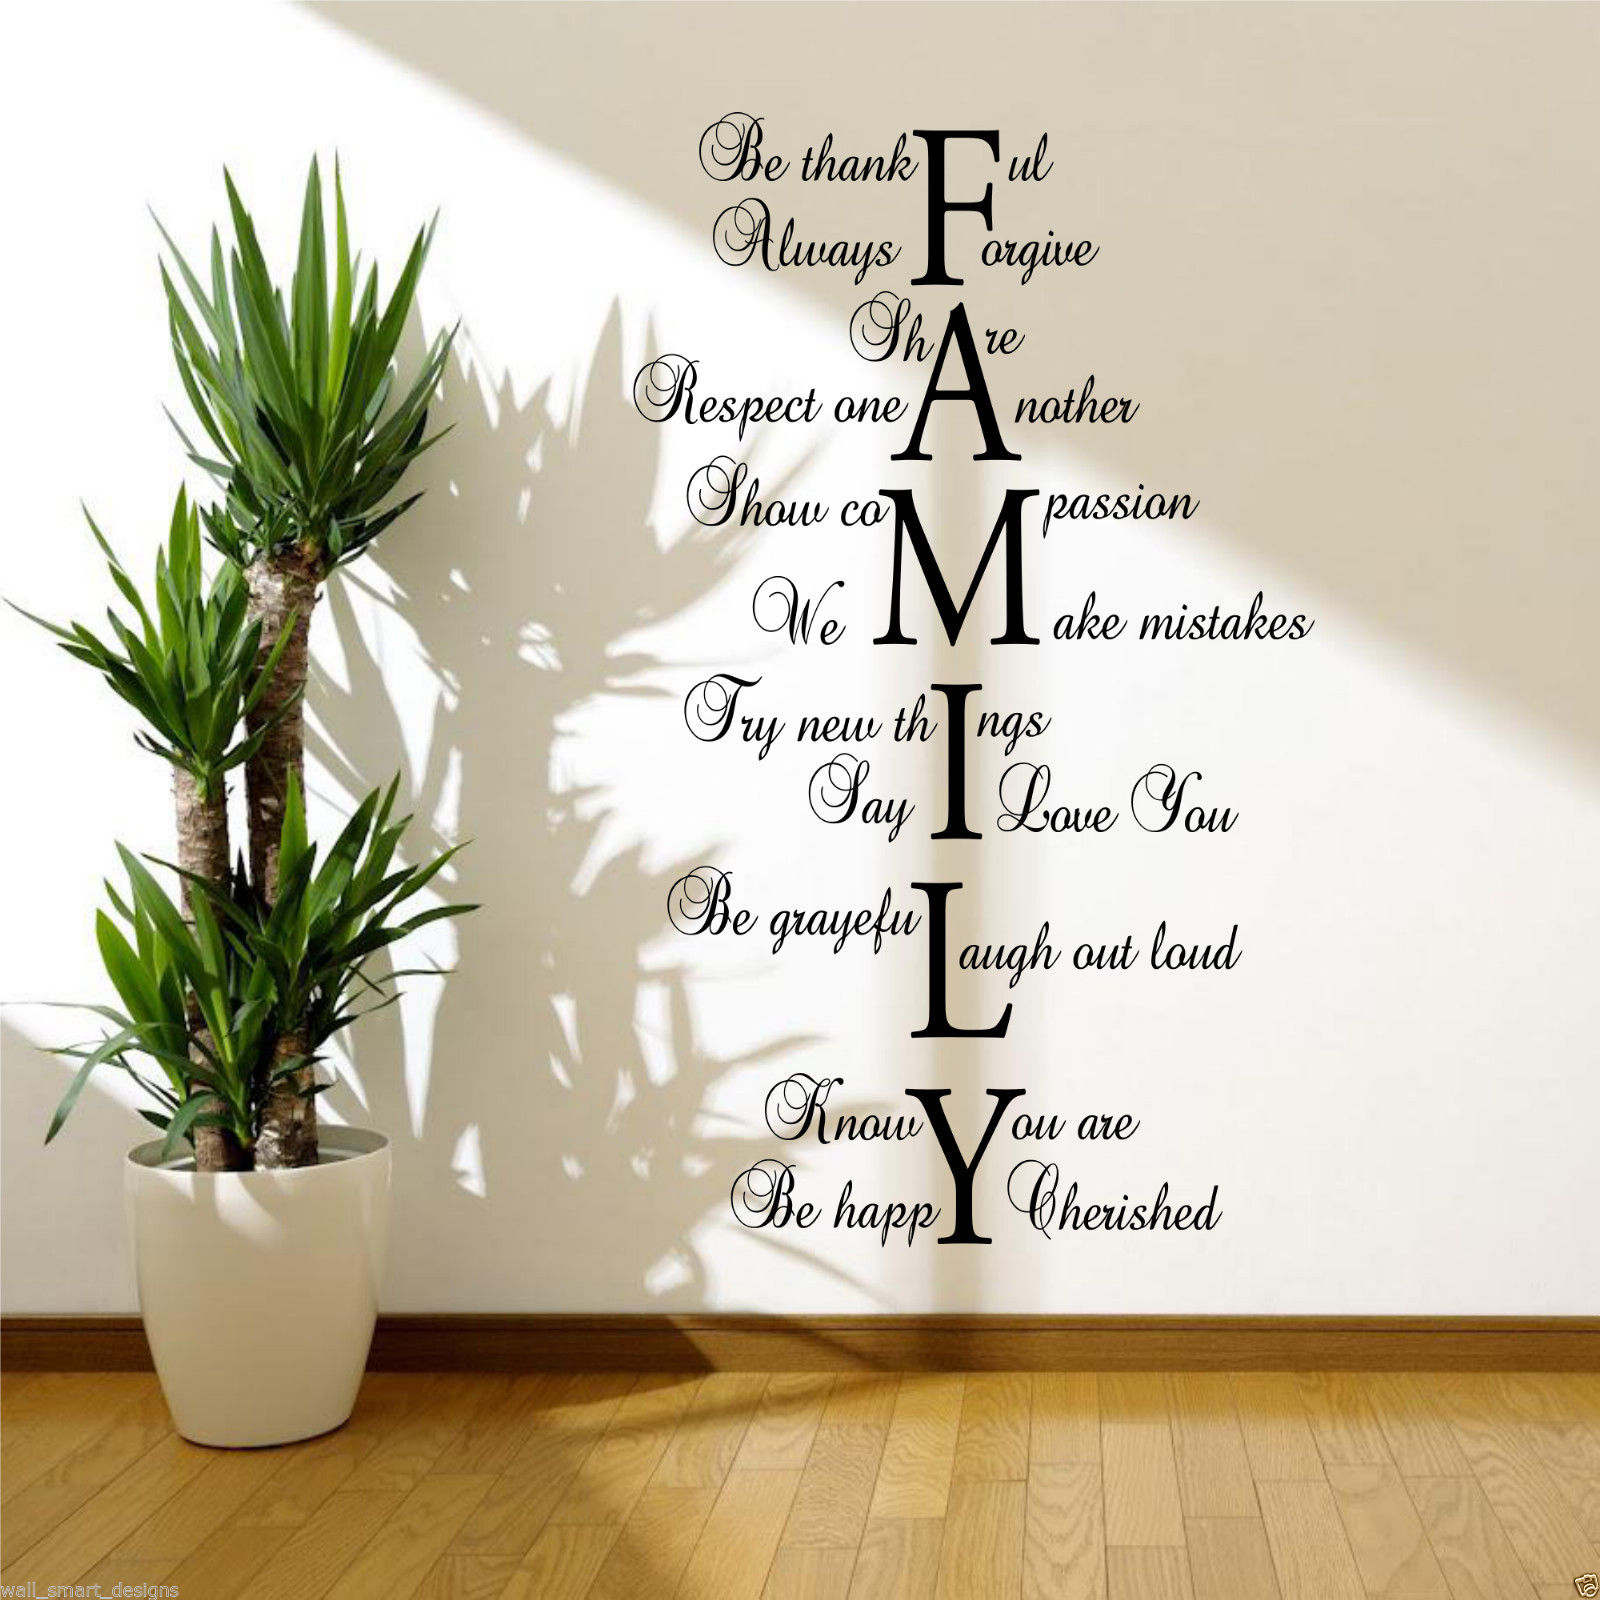 Love Life Family Quotes Pleasing Family Love Life Wall Art Sticker Quote Room Decal Mural Transfer